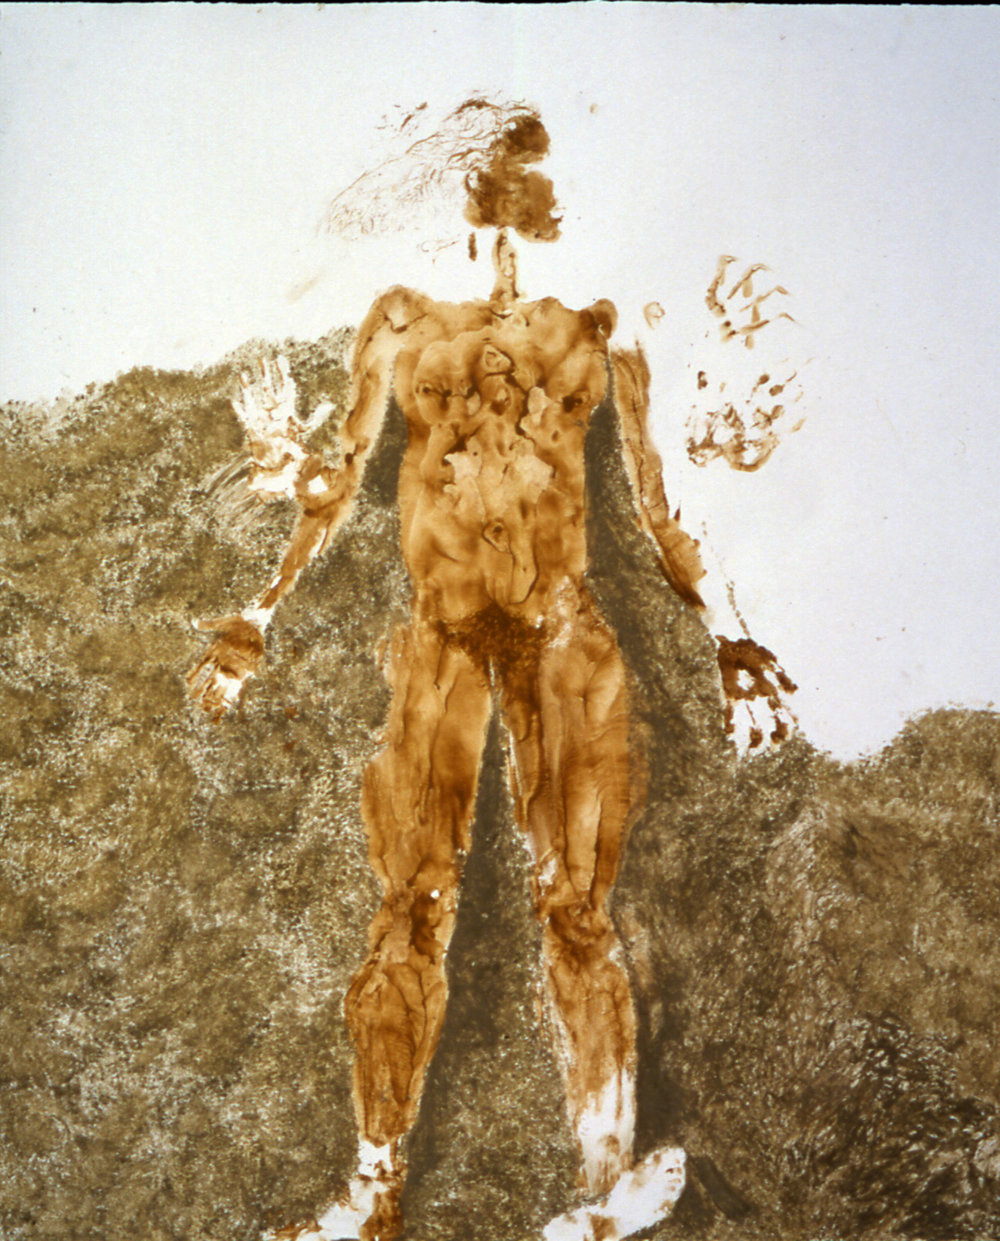 "Stuck 2001  Body print with Kansas City clay and pigment on paper, 5' 5"" x 6'"